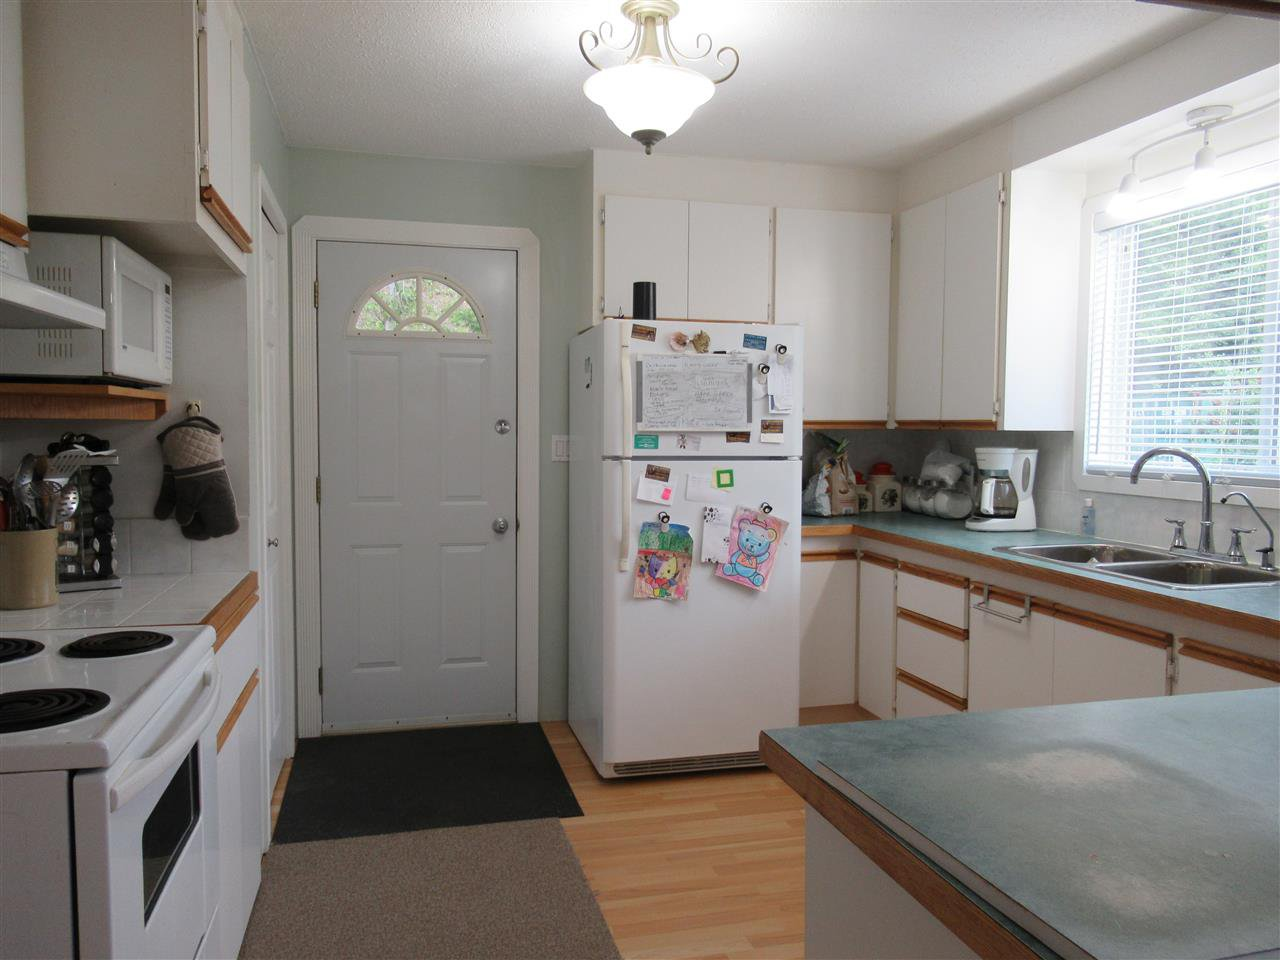 Photo 3: Photos: 3035 FIRDALE Drive in Williams Lake: Williams Lake - Rural North House for sale (Williams Lake (Zone 27))  : MLS®# R2484738